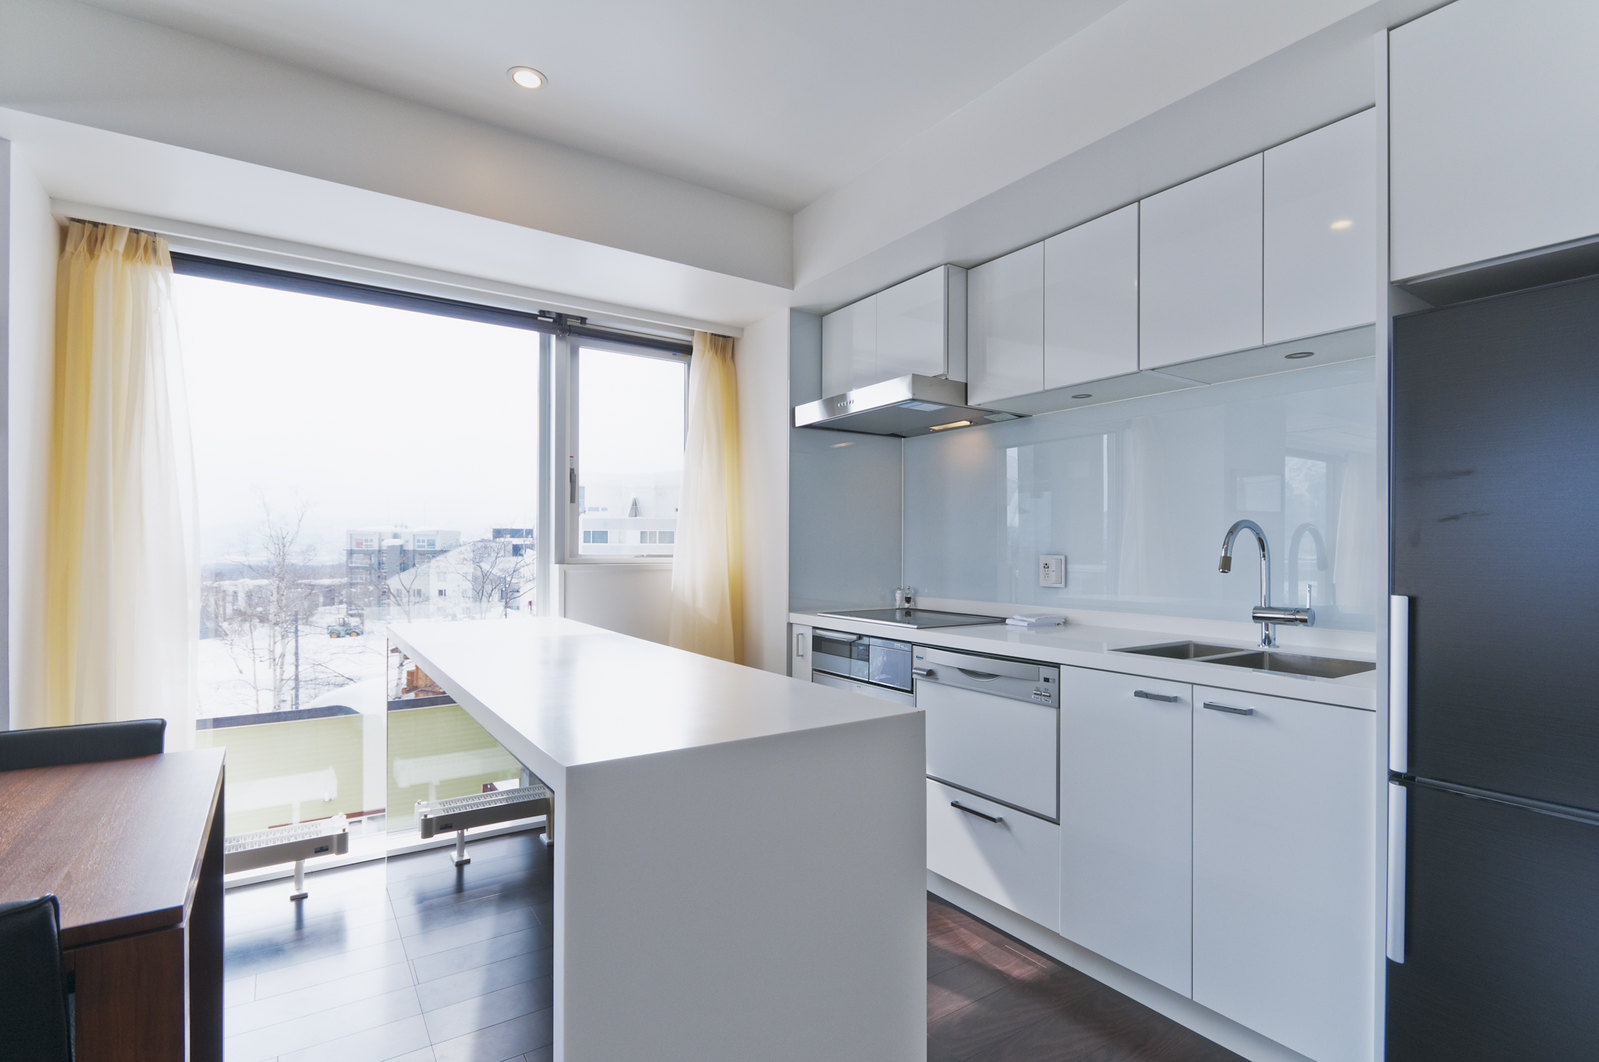 The fully furnished kitchen in a 2 bedroom Premium apartment in Kizuna, Niseko.